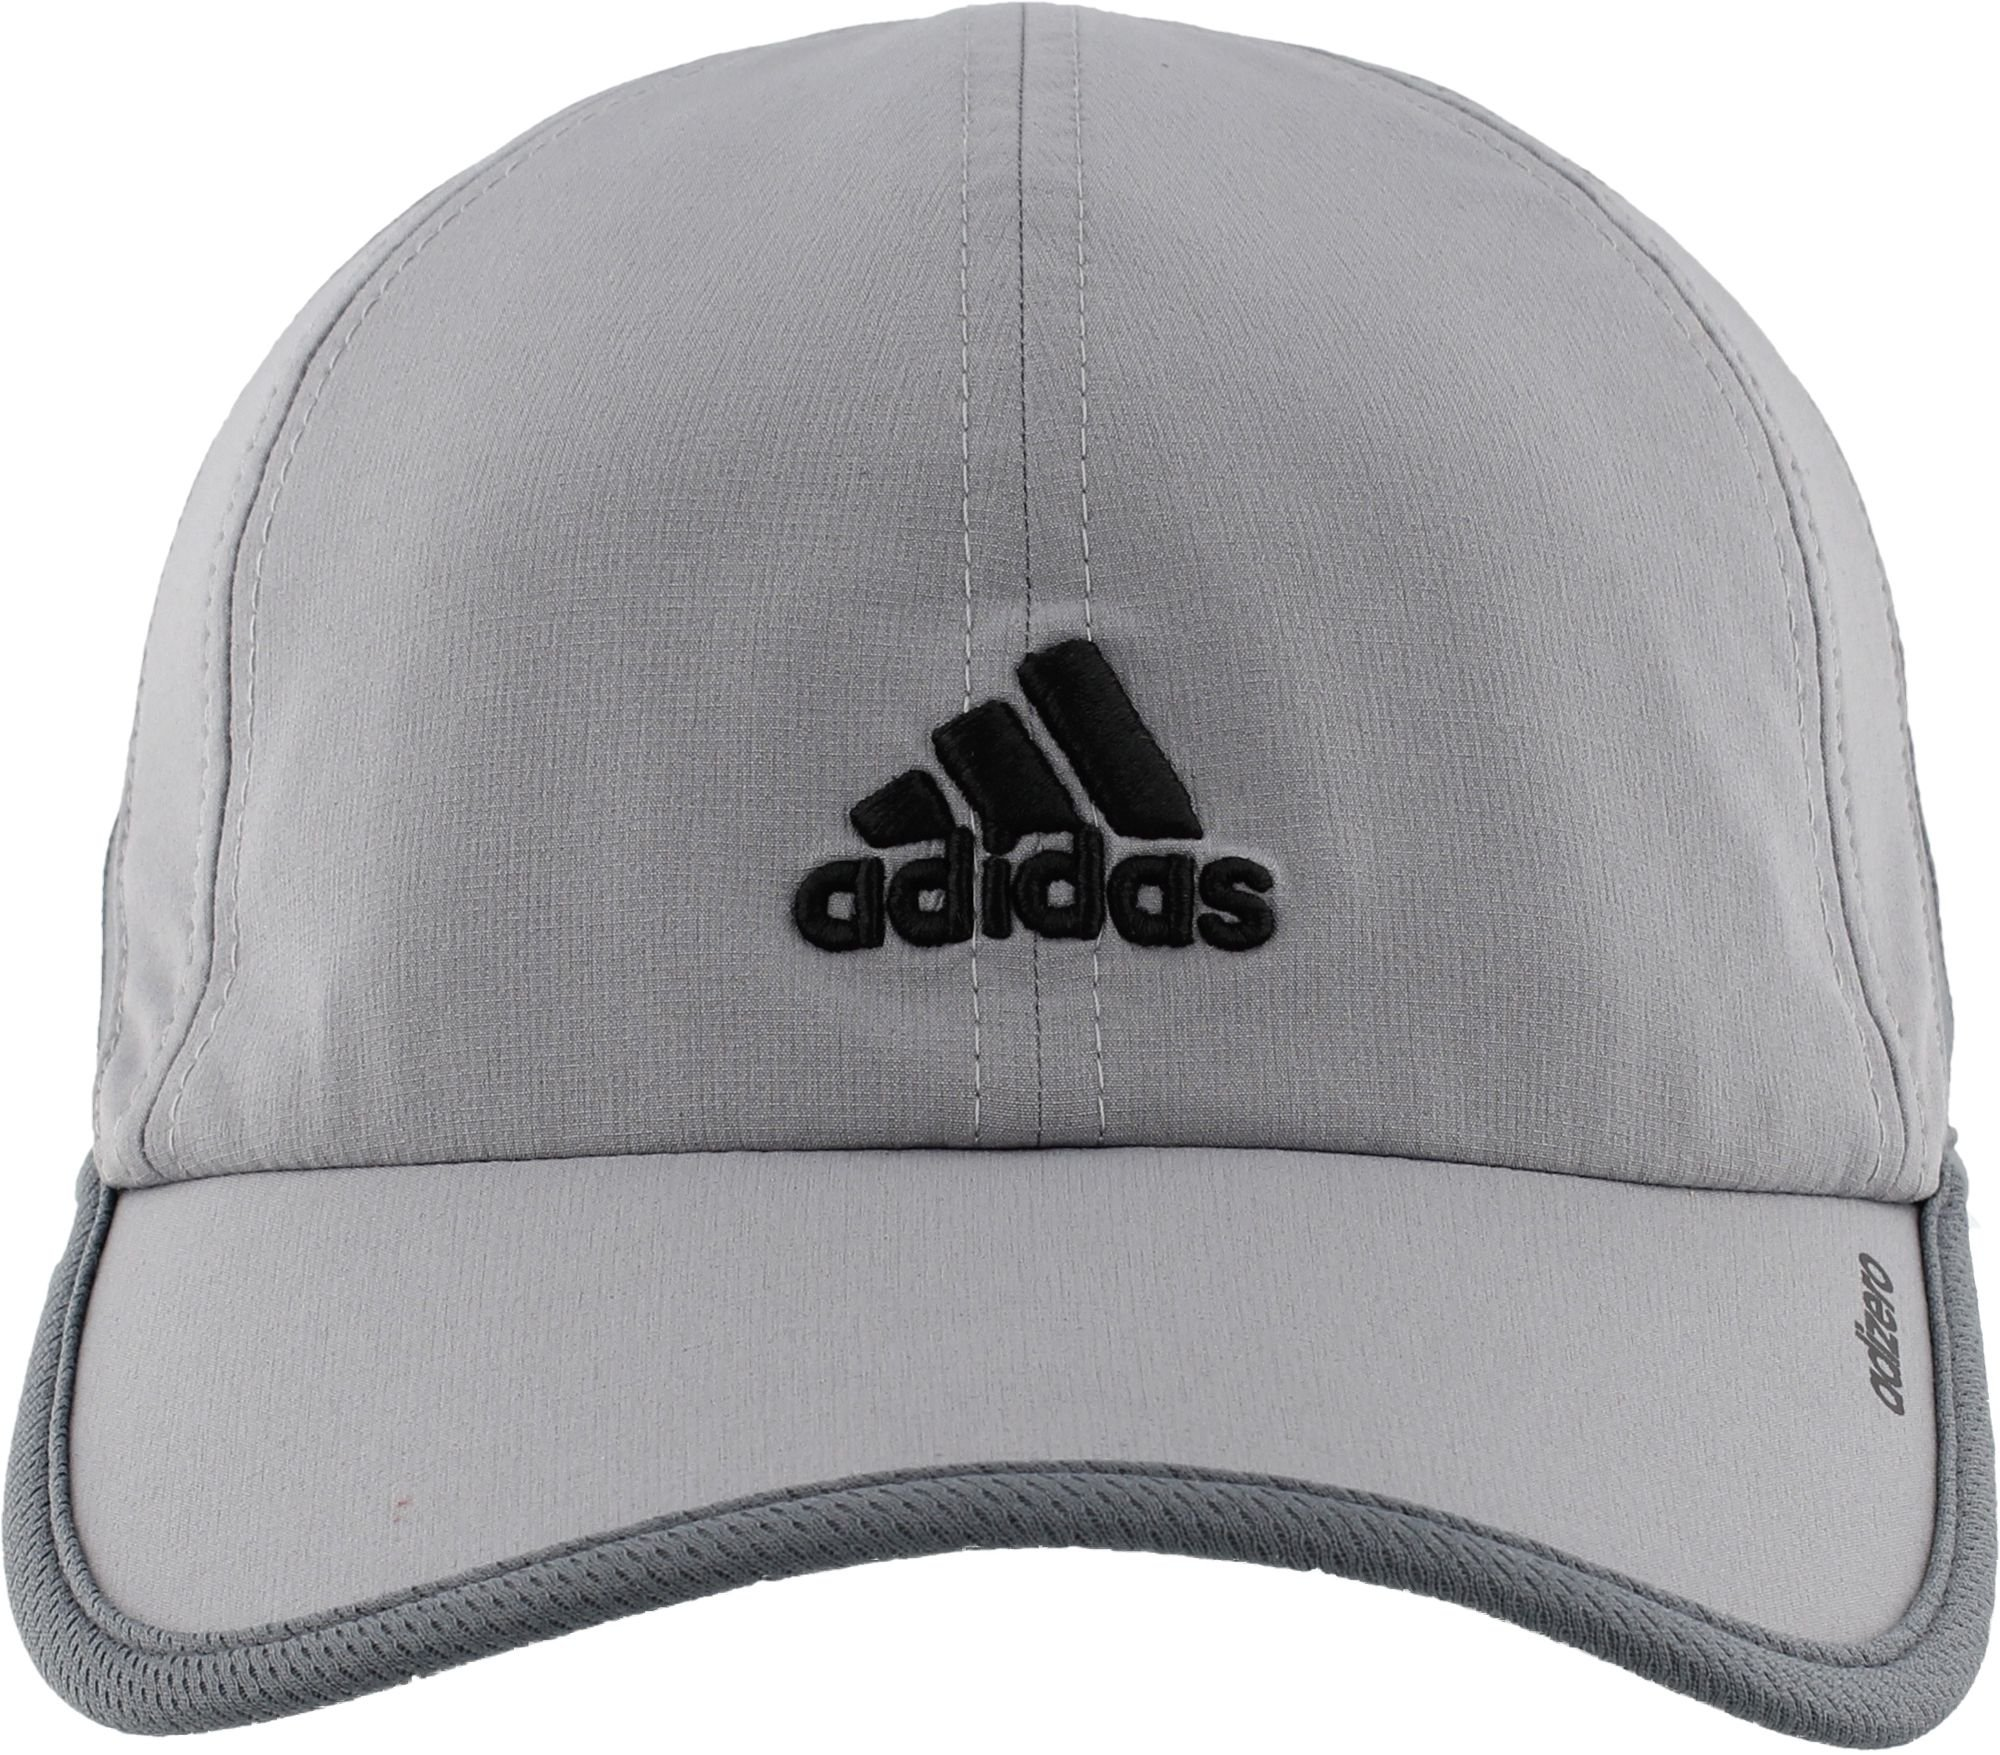 f06a43e607bad adidas Men s Adizero Cap (Grey Black) - O0057DCKUS716106827631   Baseball  Caps   Clothing